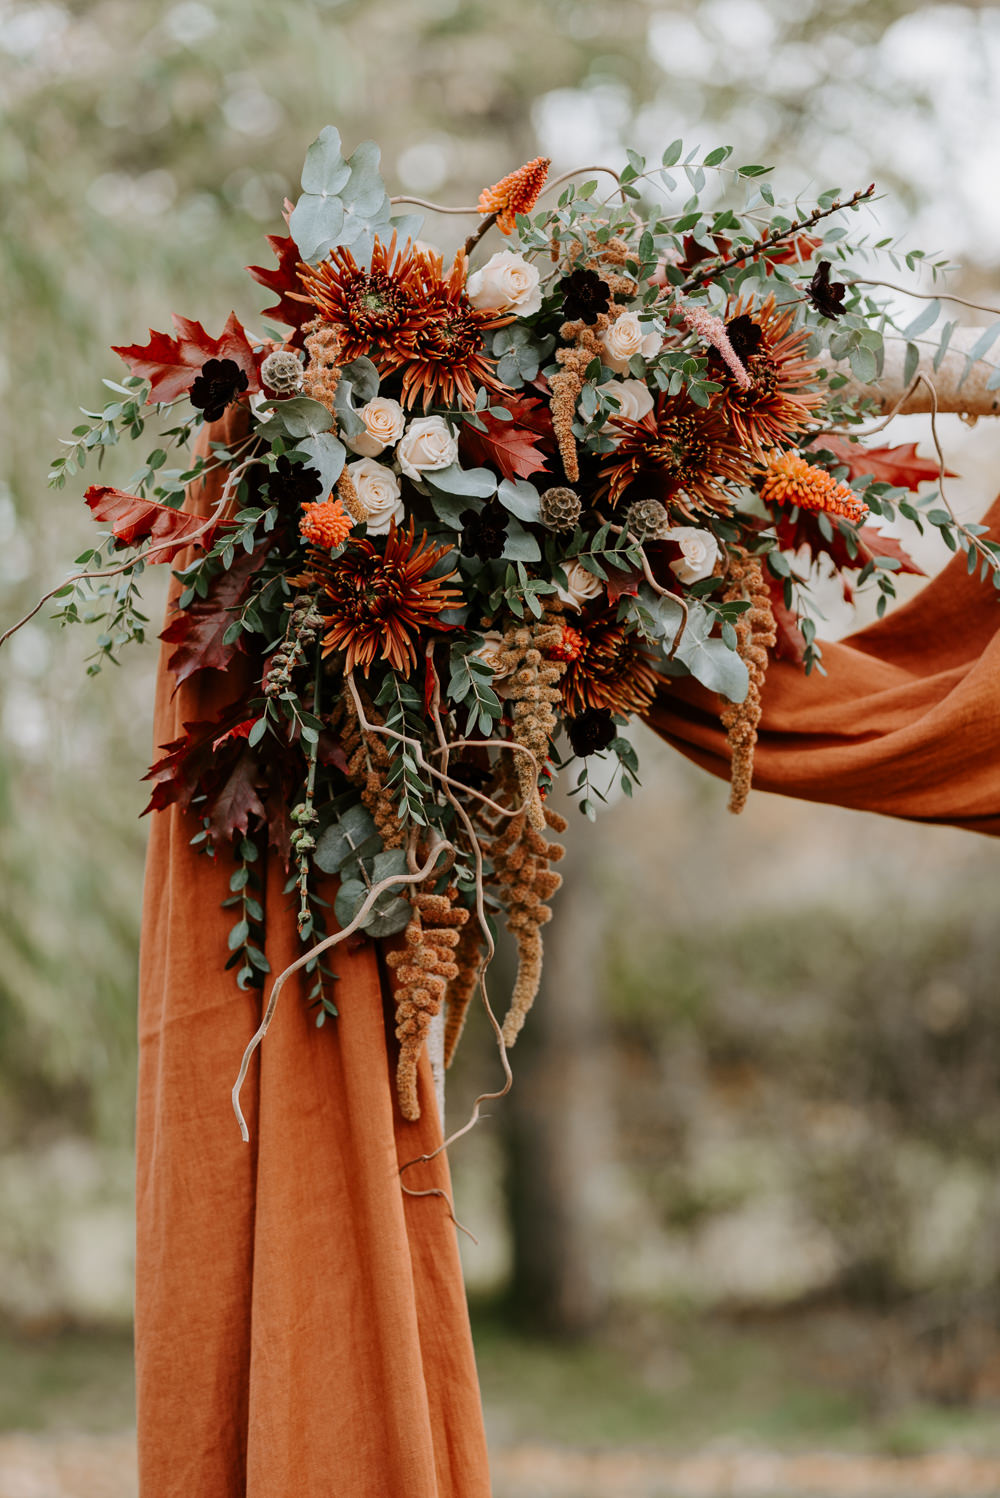 Flowers Flower Arch Orange Fabric Autumn Wedding Colours Laura Williams Photography